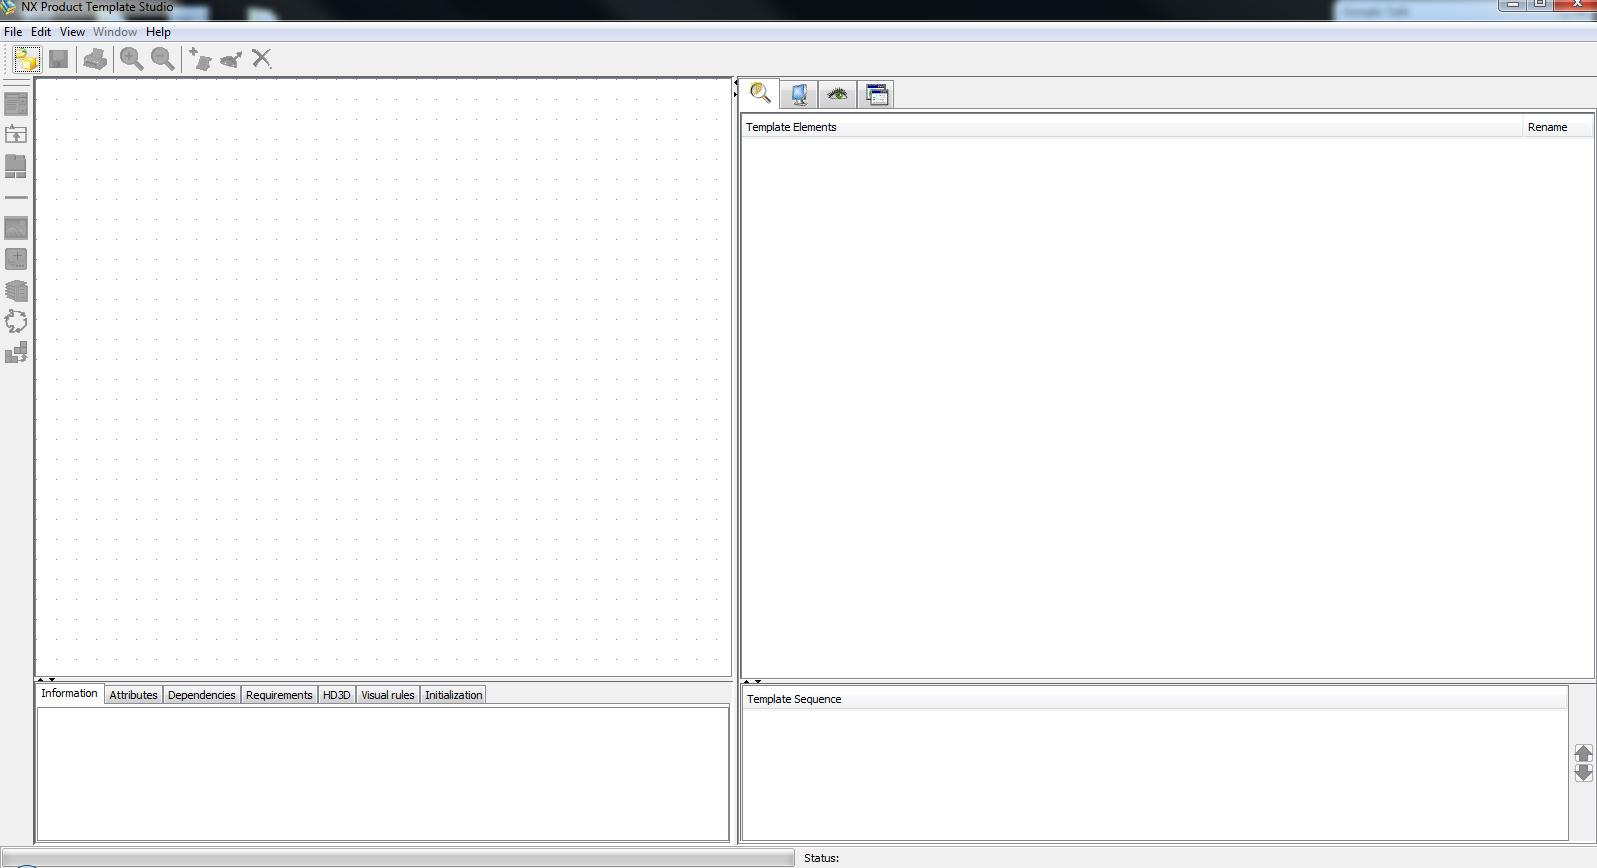 How to fix Java Error for NX 8 5 Product Template Studio